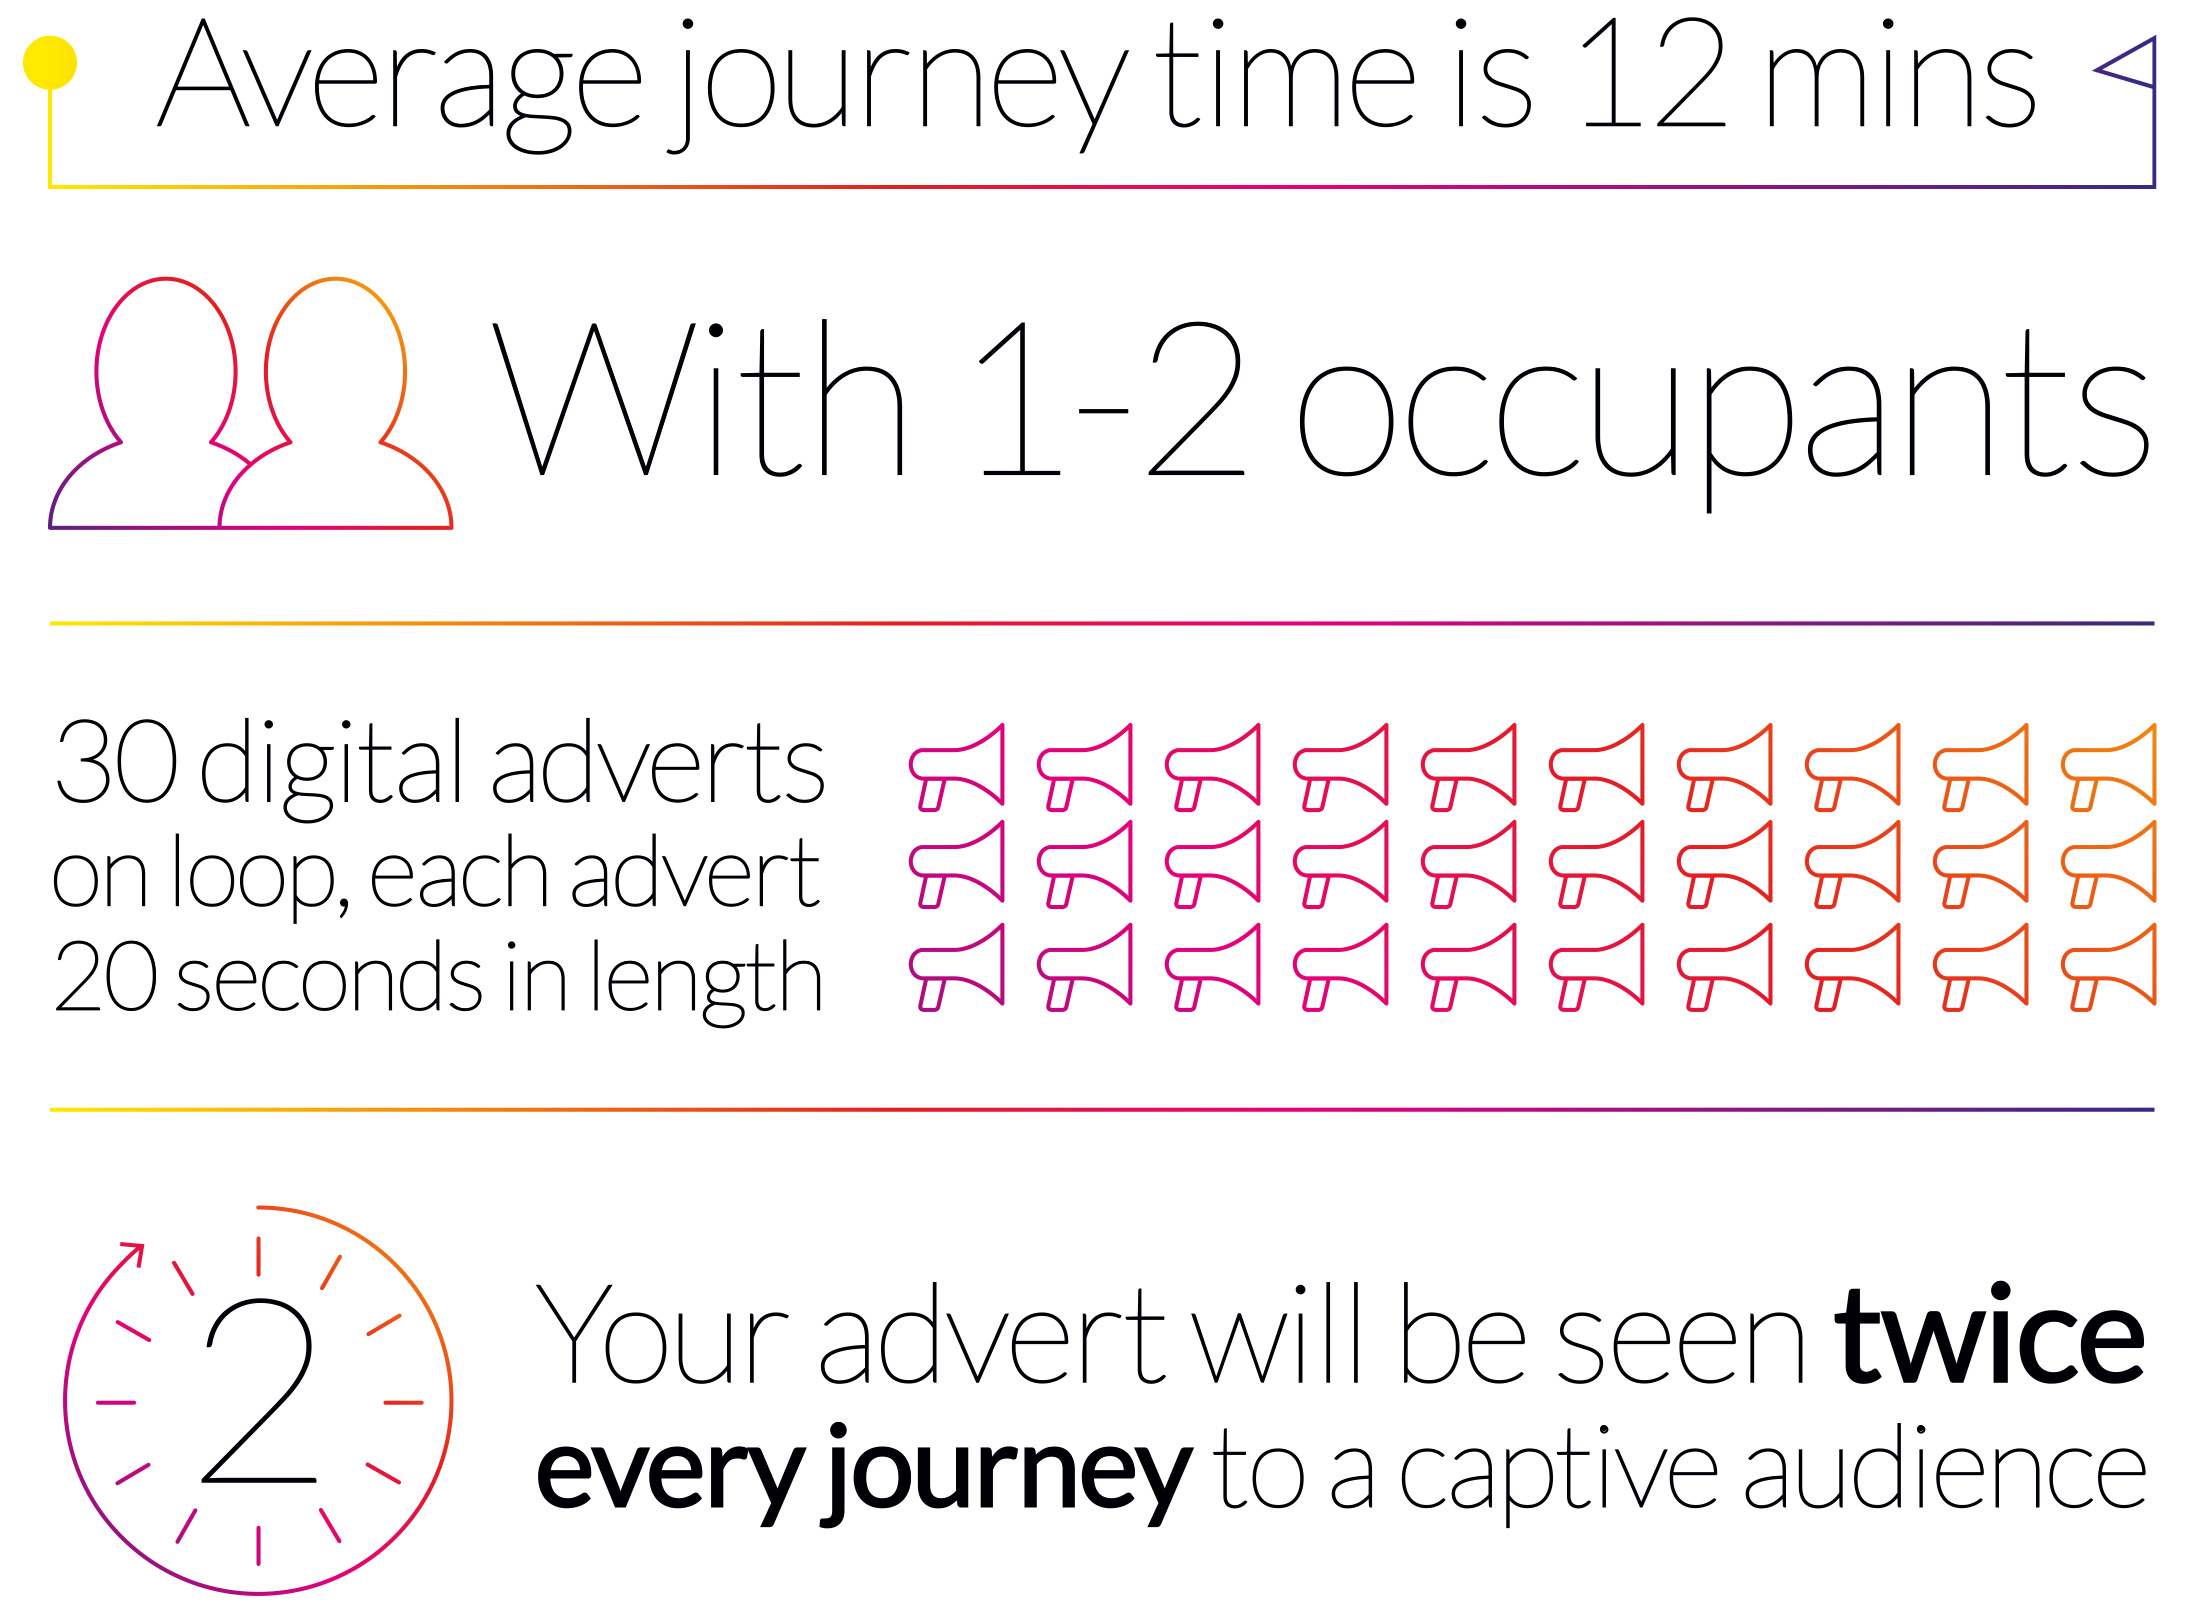 advertise-infographic-retina